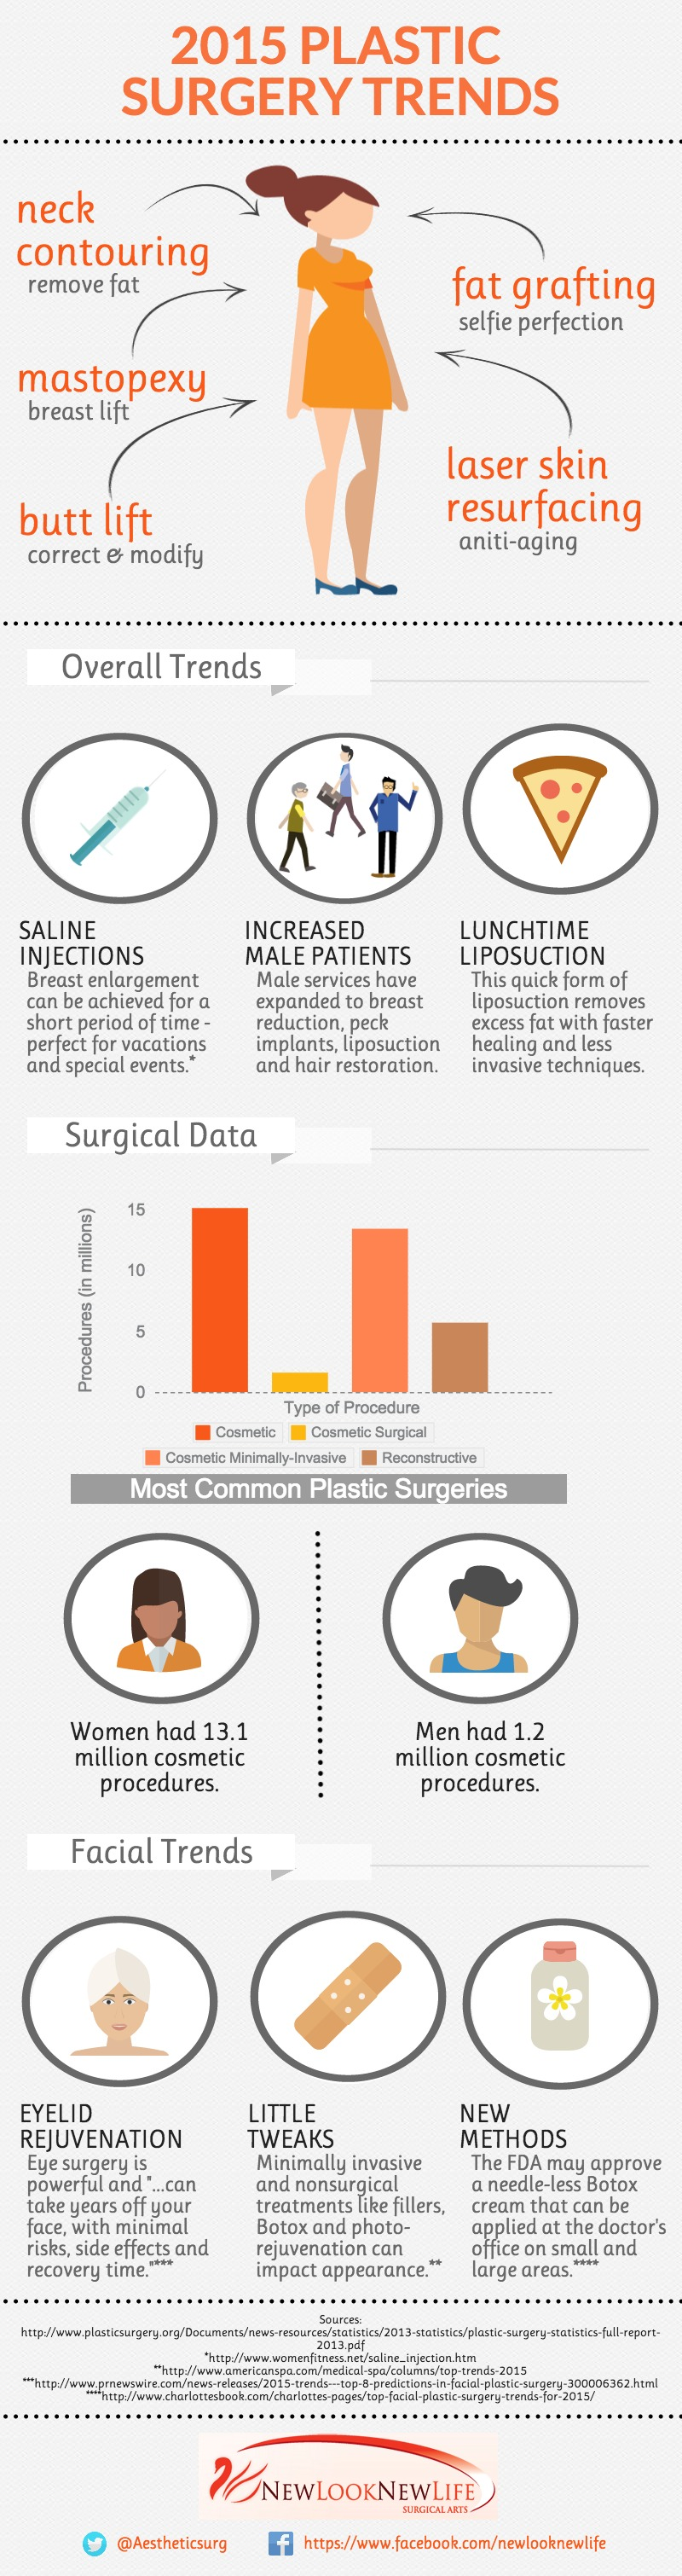 NLNL-Plastic-Surgery-trends-for-2015